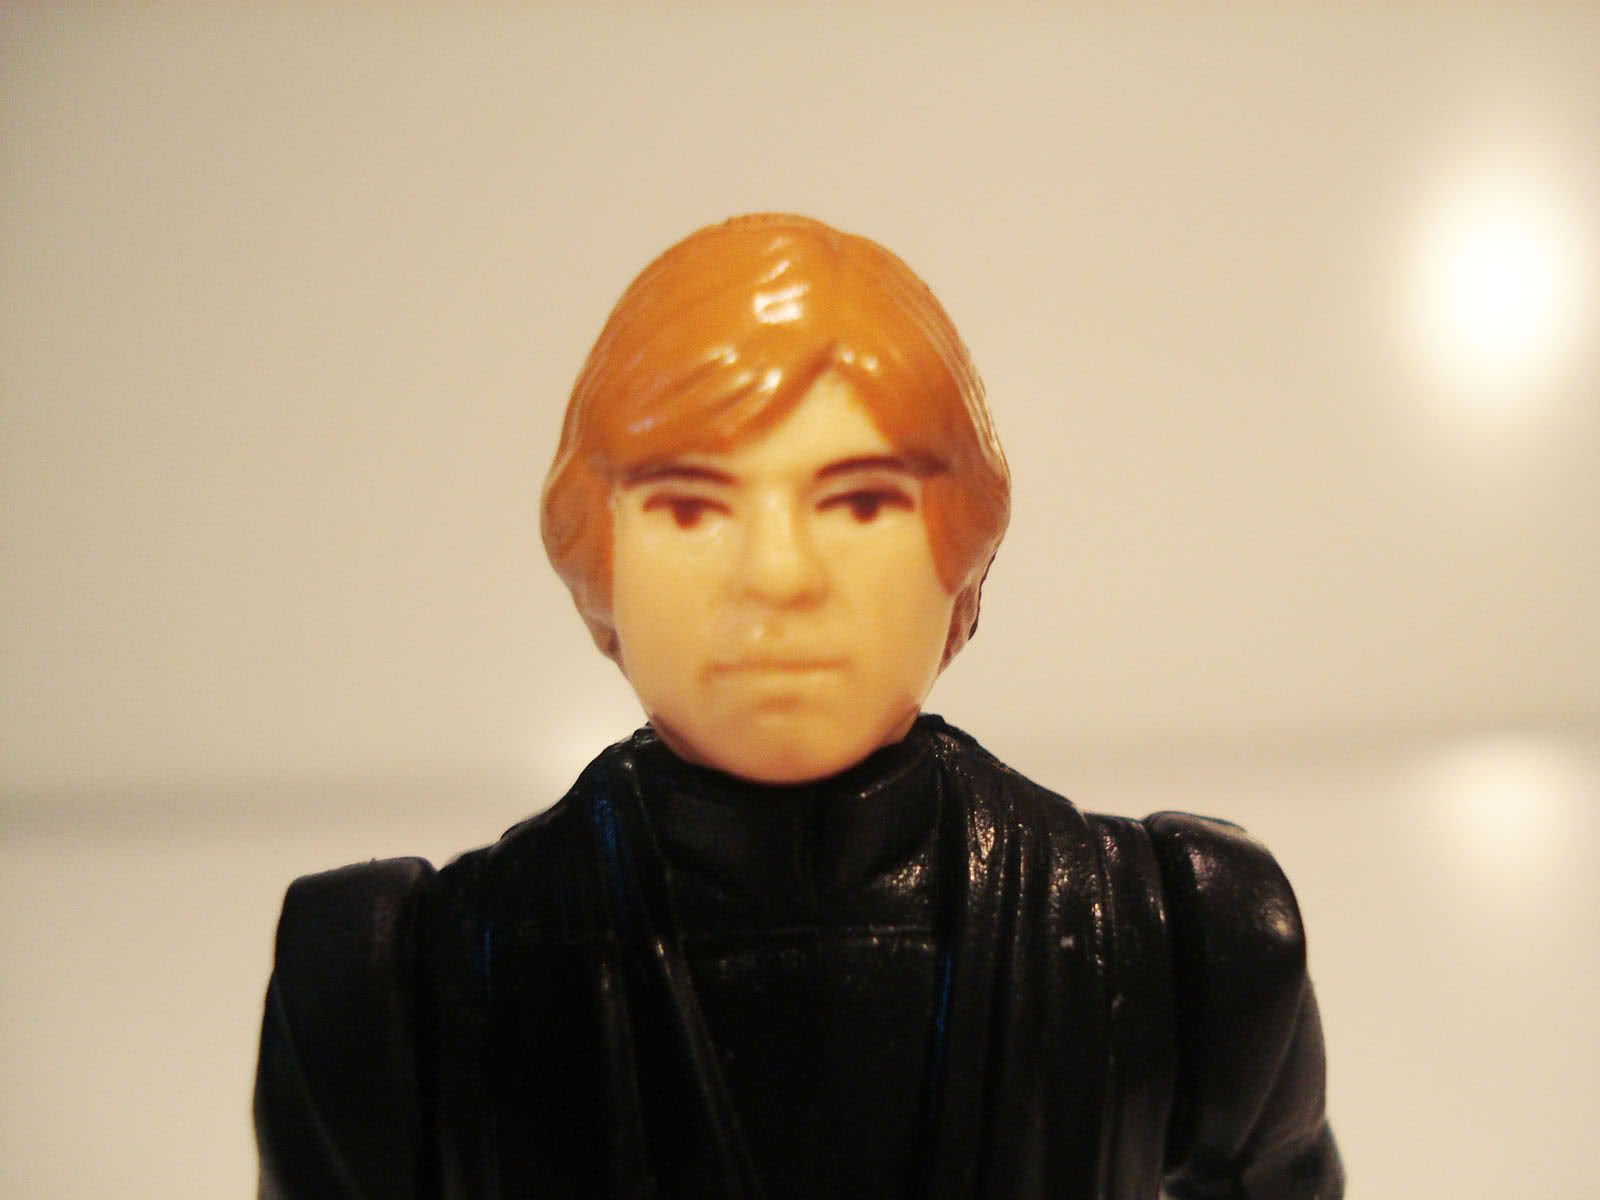 'Made In Taiwan' Molded Head Luke Jedi - Accessories/Value? 2gxfvyx